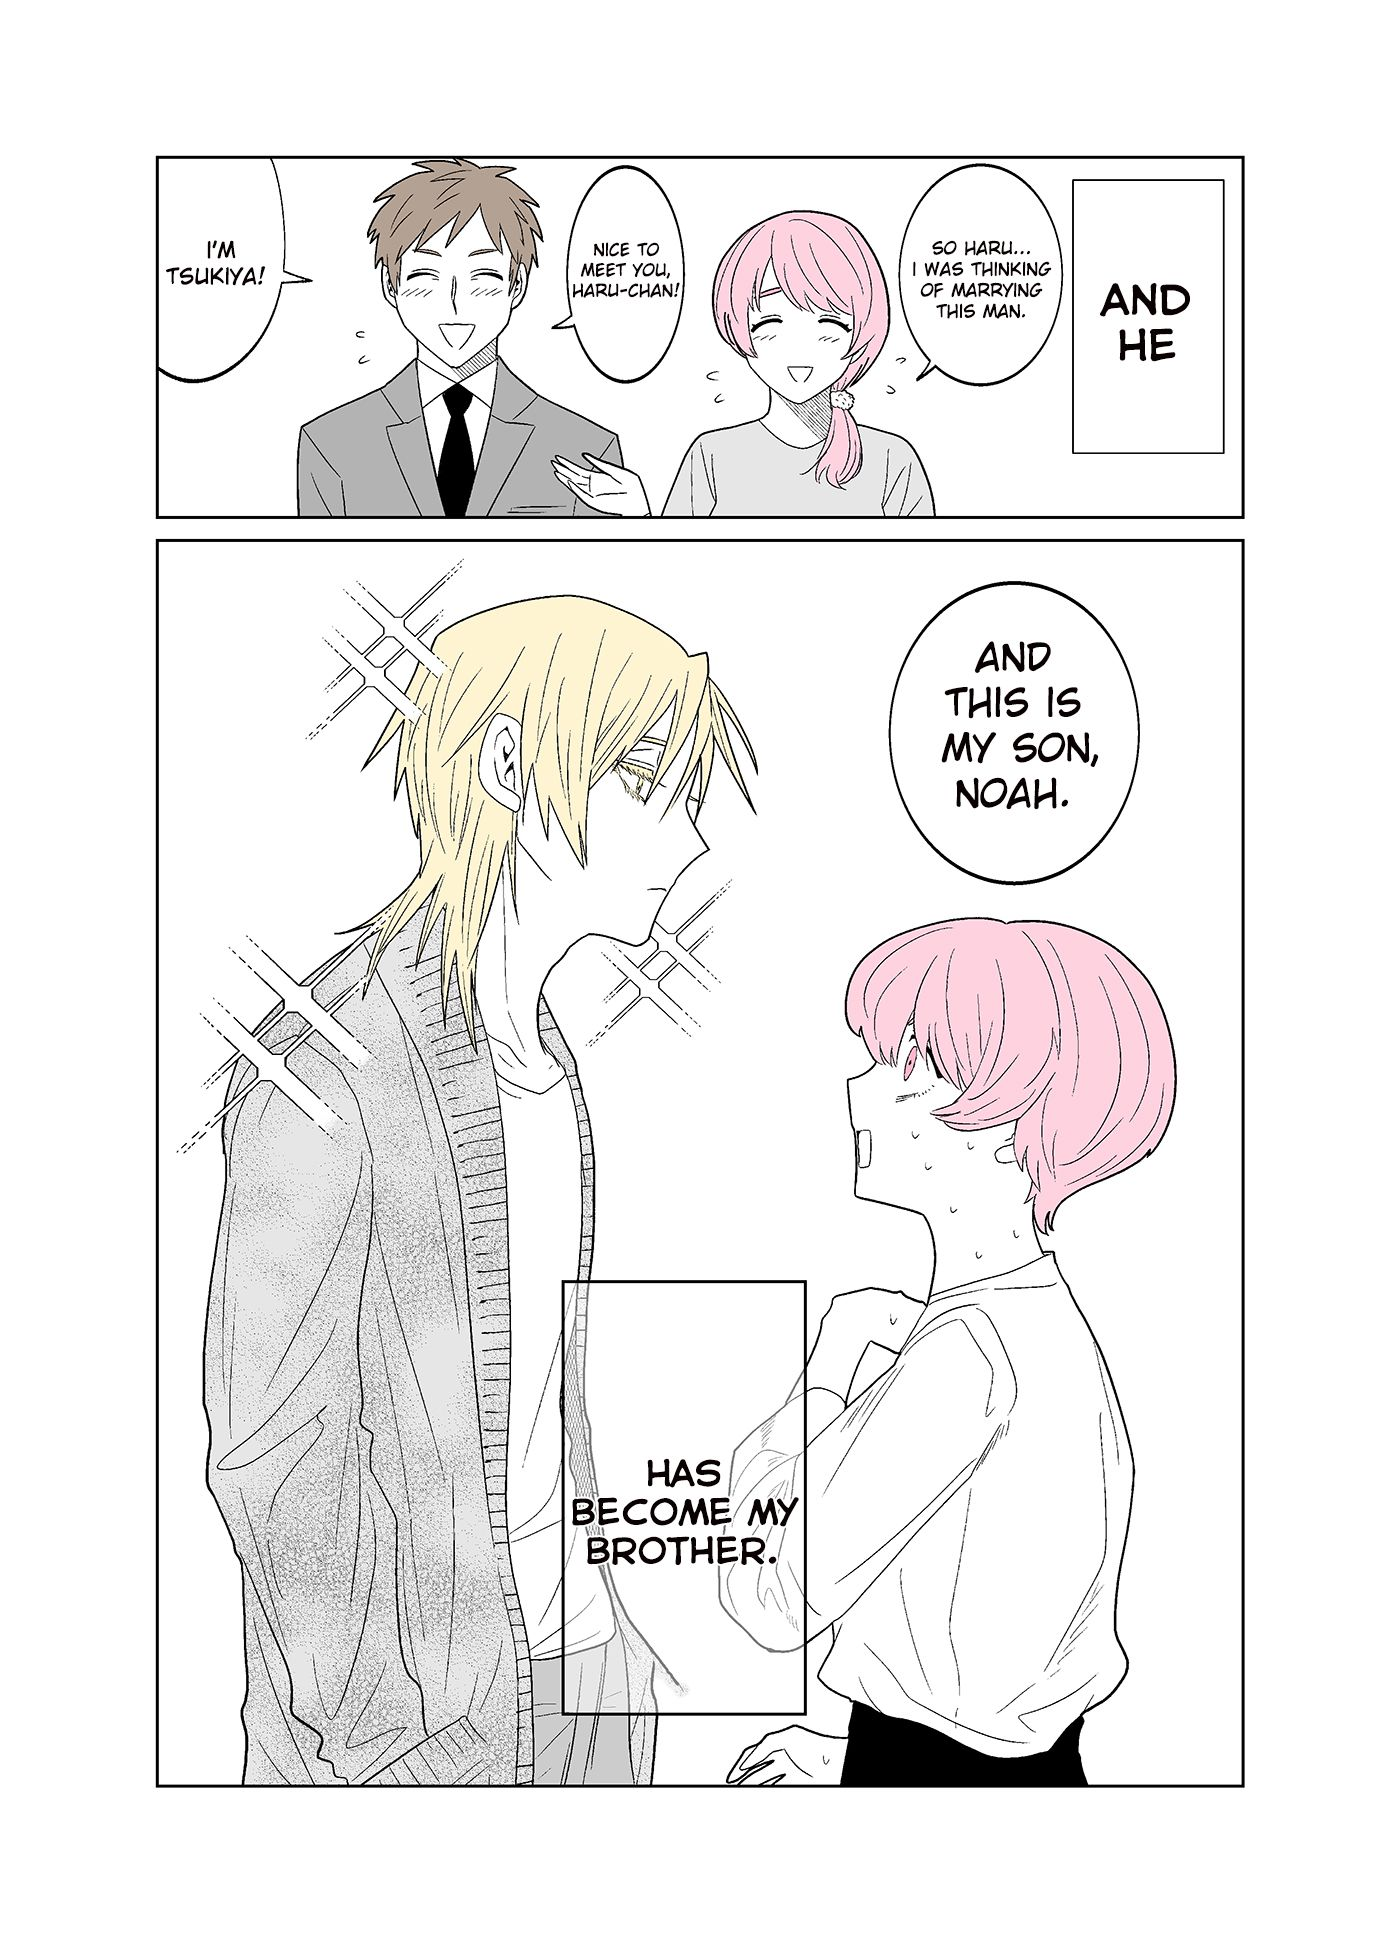 My Favorite Model Has Become My older brother - chapter 1 - #2